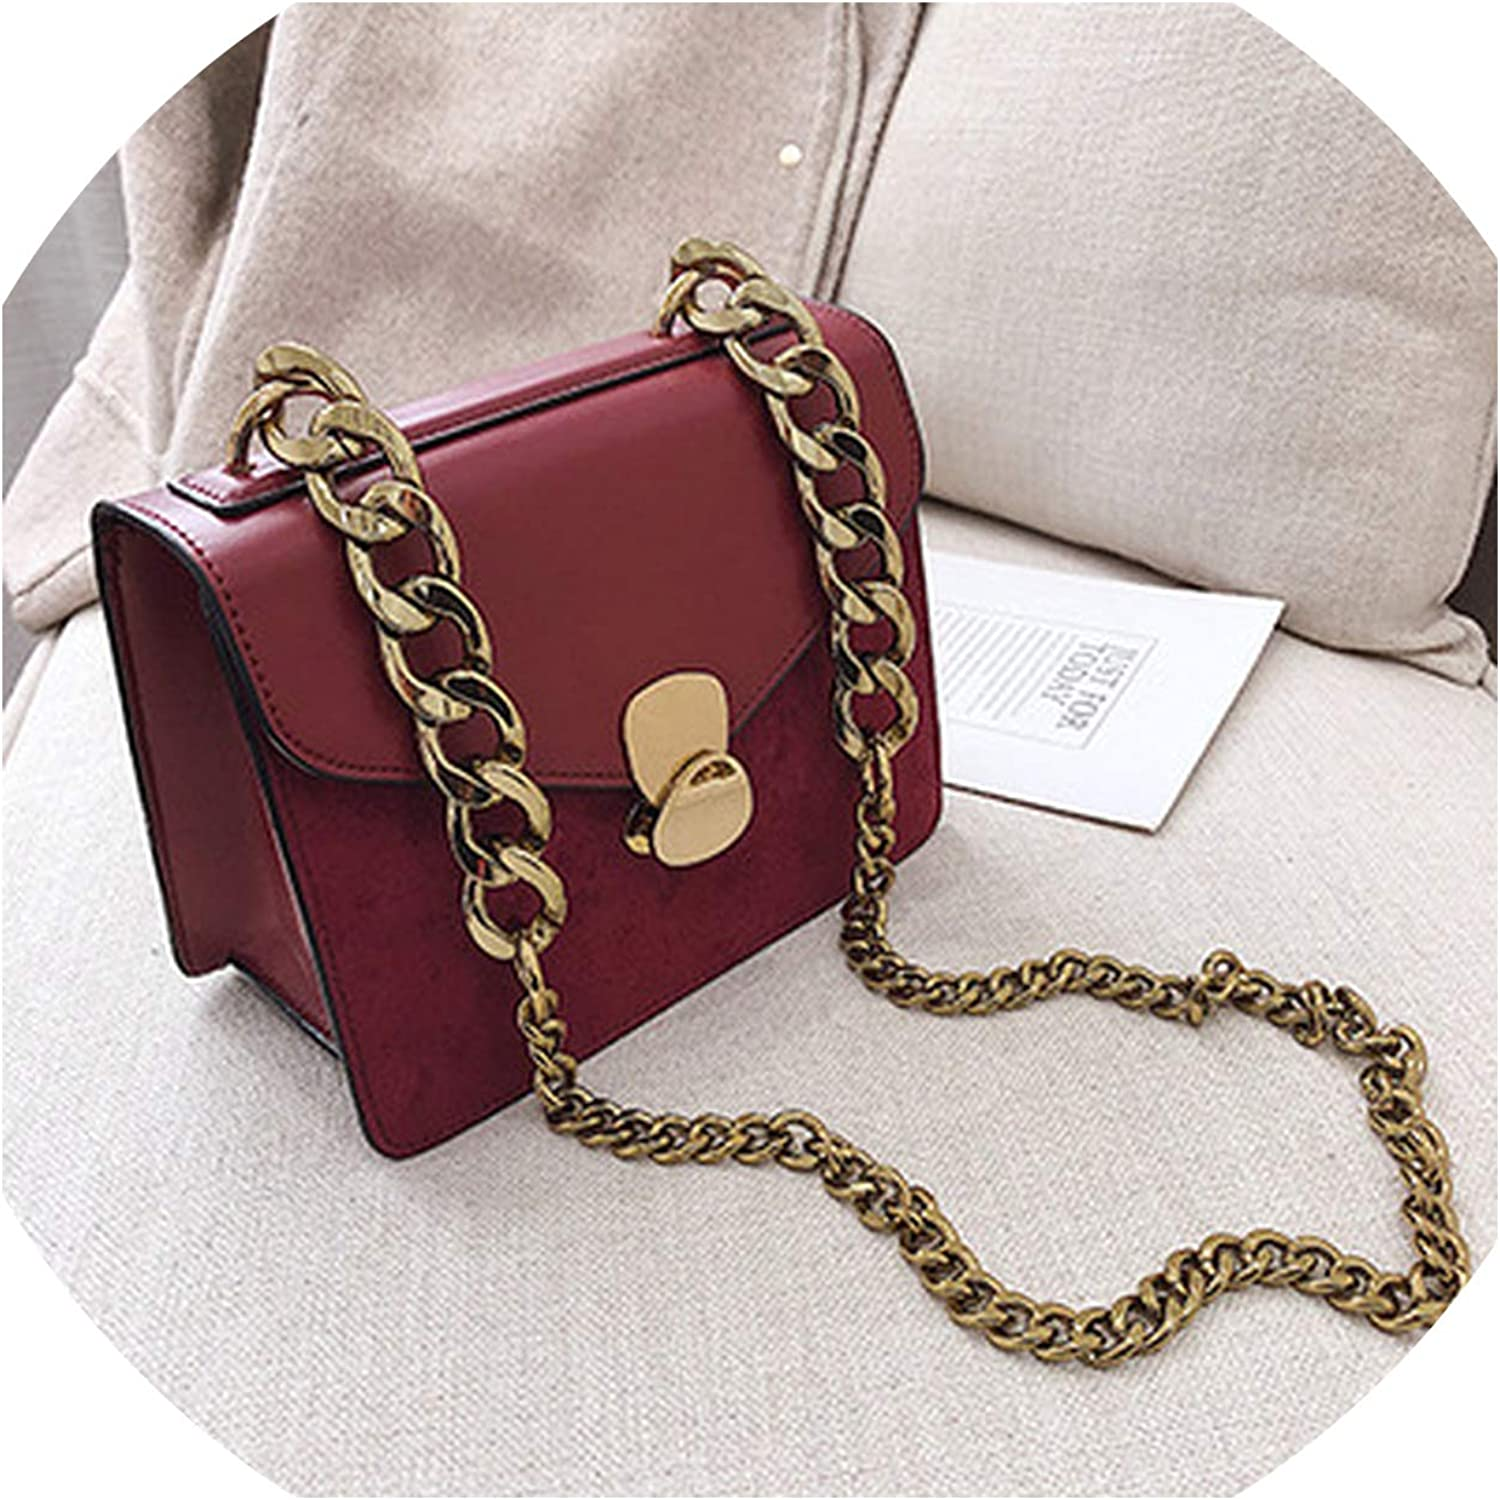 Handbags Women Bags Pu...